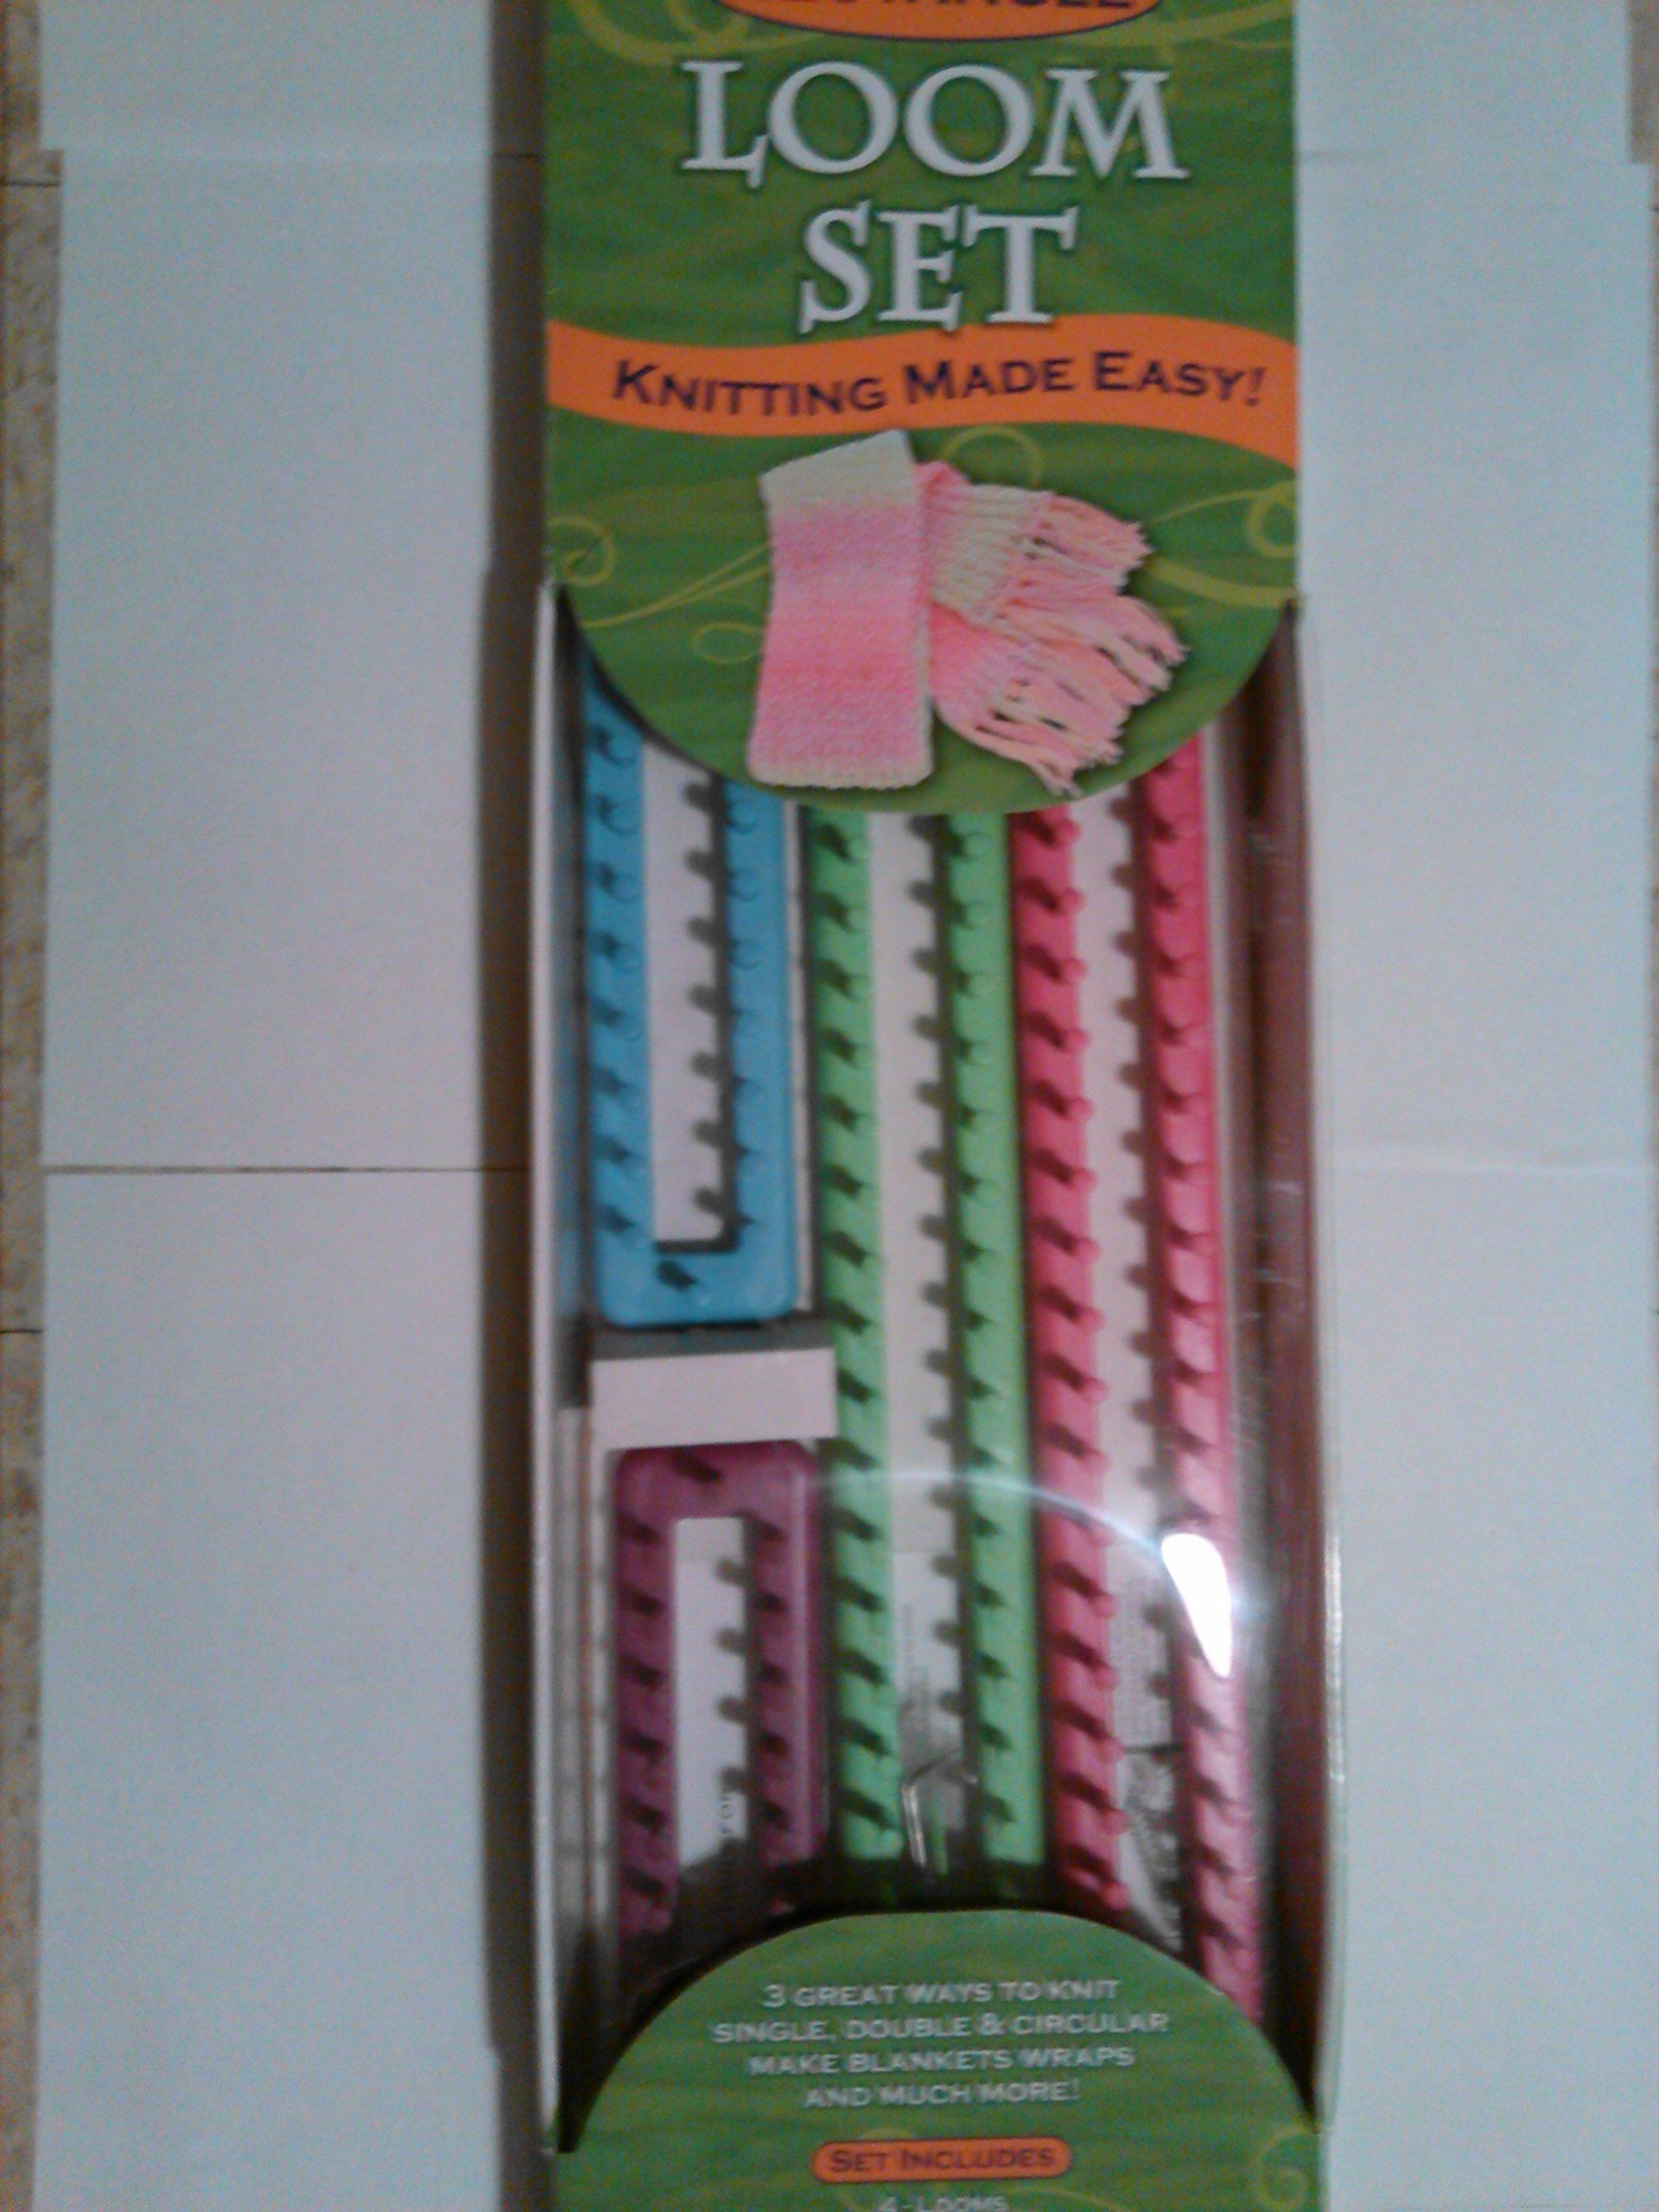 Rectangle Loom Set Knitting Made Easy!